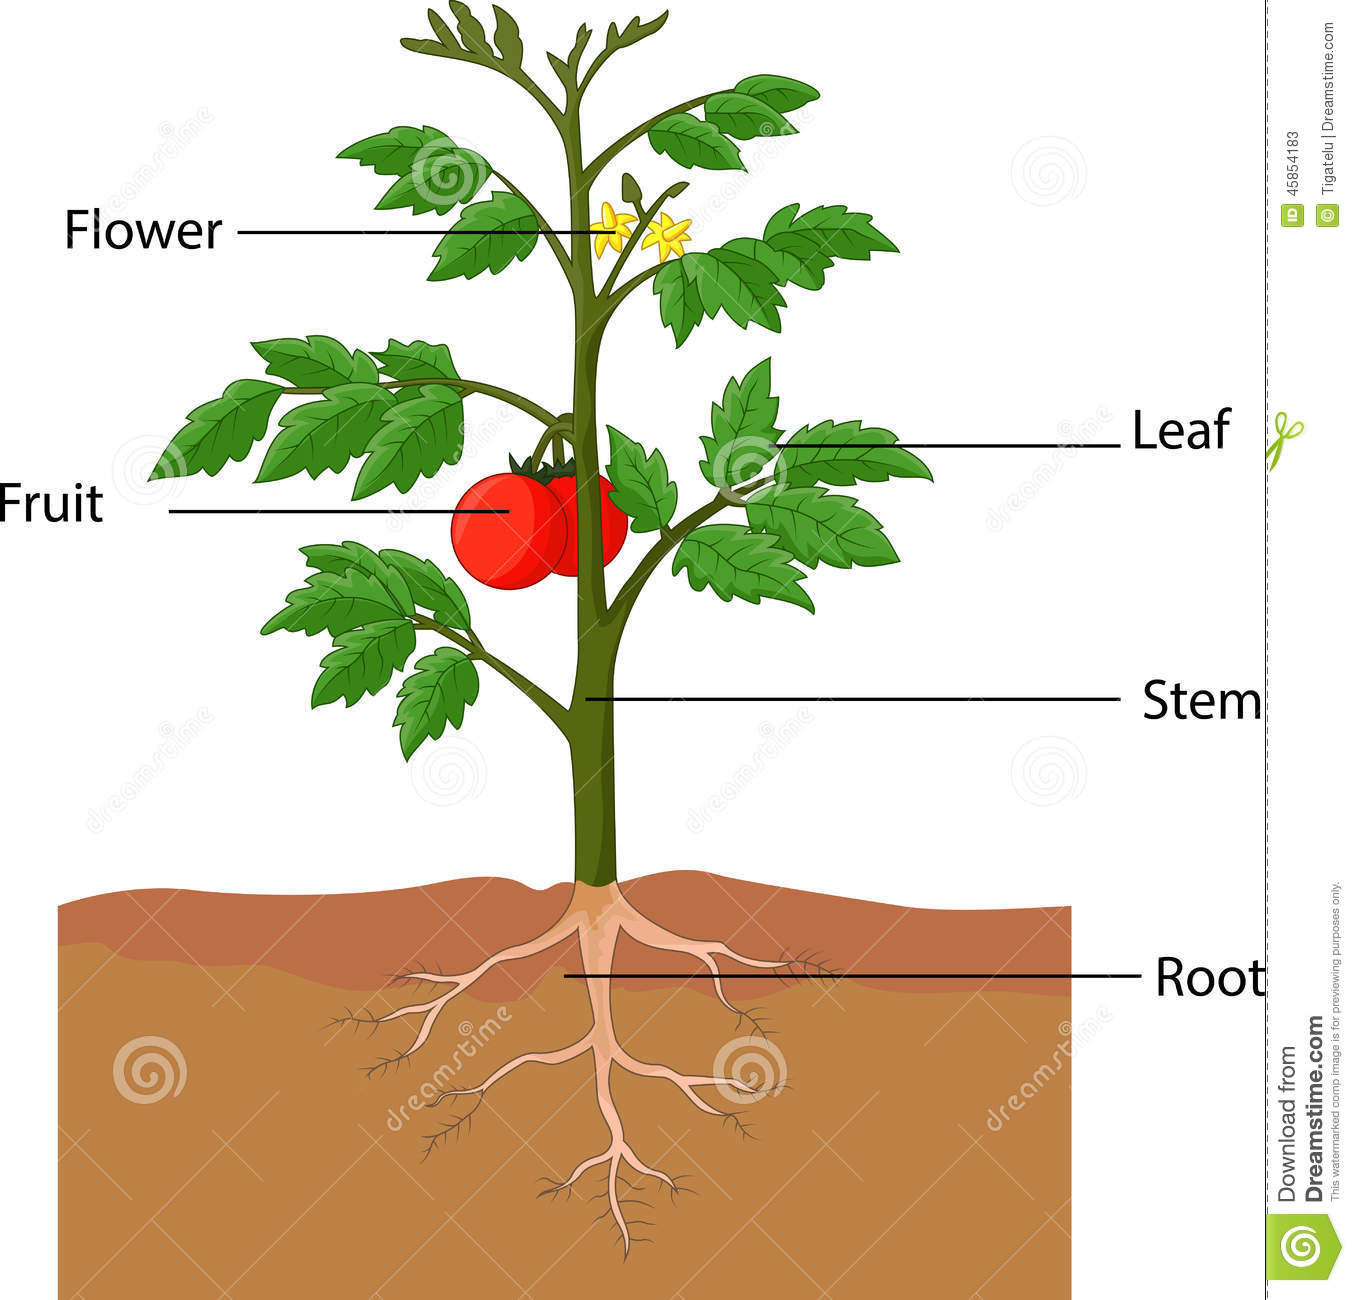 Diagram parts of a tomato diy wiring diagrams showing the parts of a tomato plant stock vector illustration of rh dreamstime com plant stem diagram plant anatomy diagram ccuart Gallery